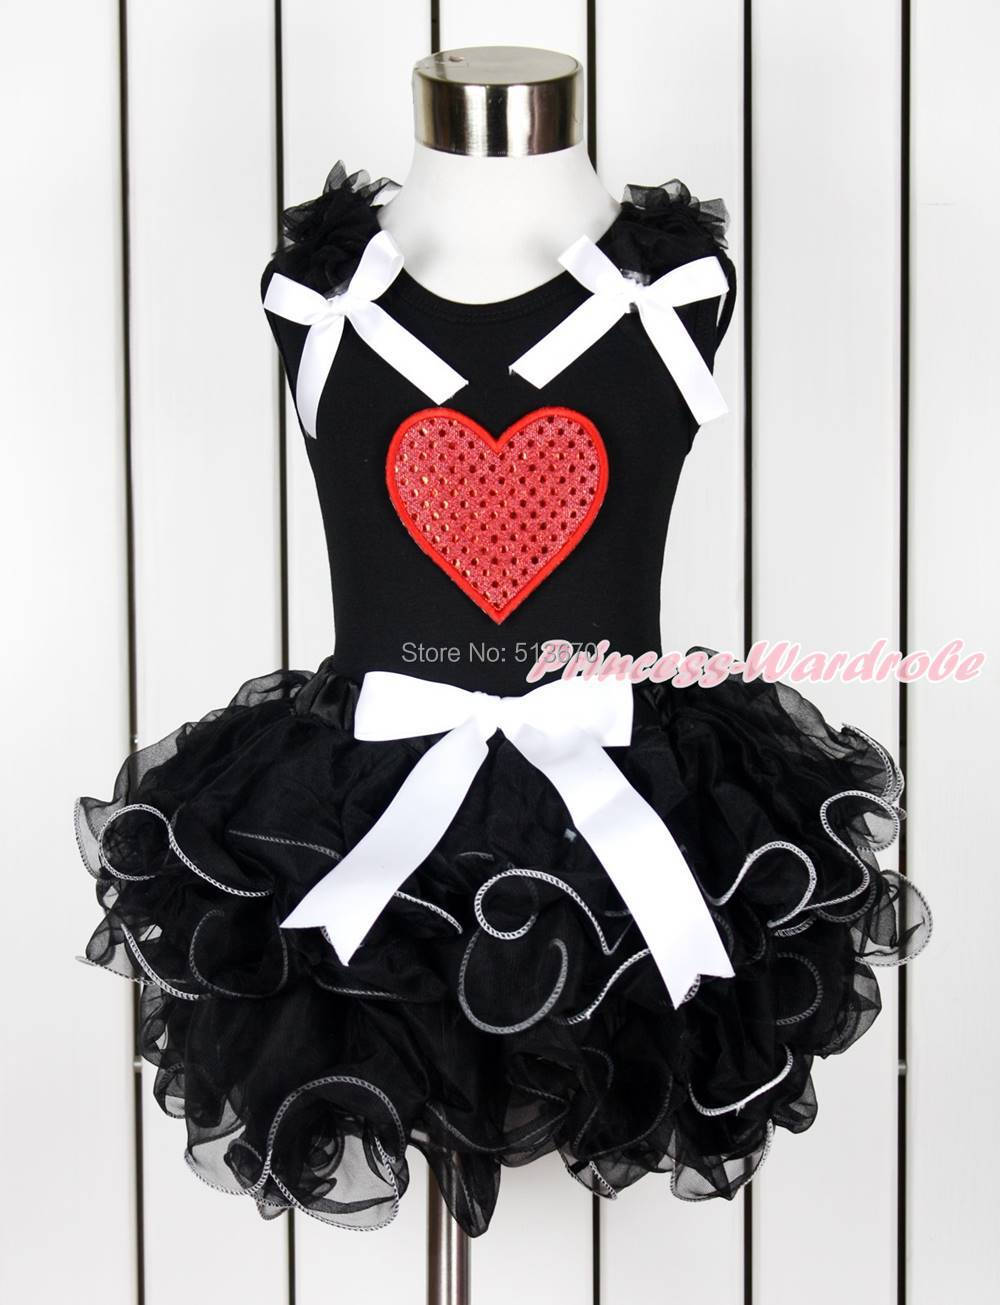 Valentine Sparkle Hot Red Heart Baby Girl Black Top Black Petal Pettiskirt NB-8Y MAPSA0128(Hong Kong)